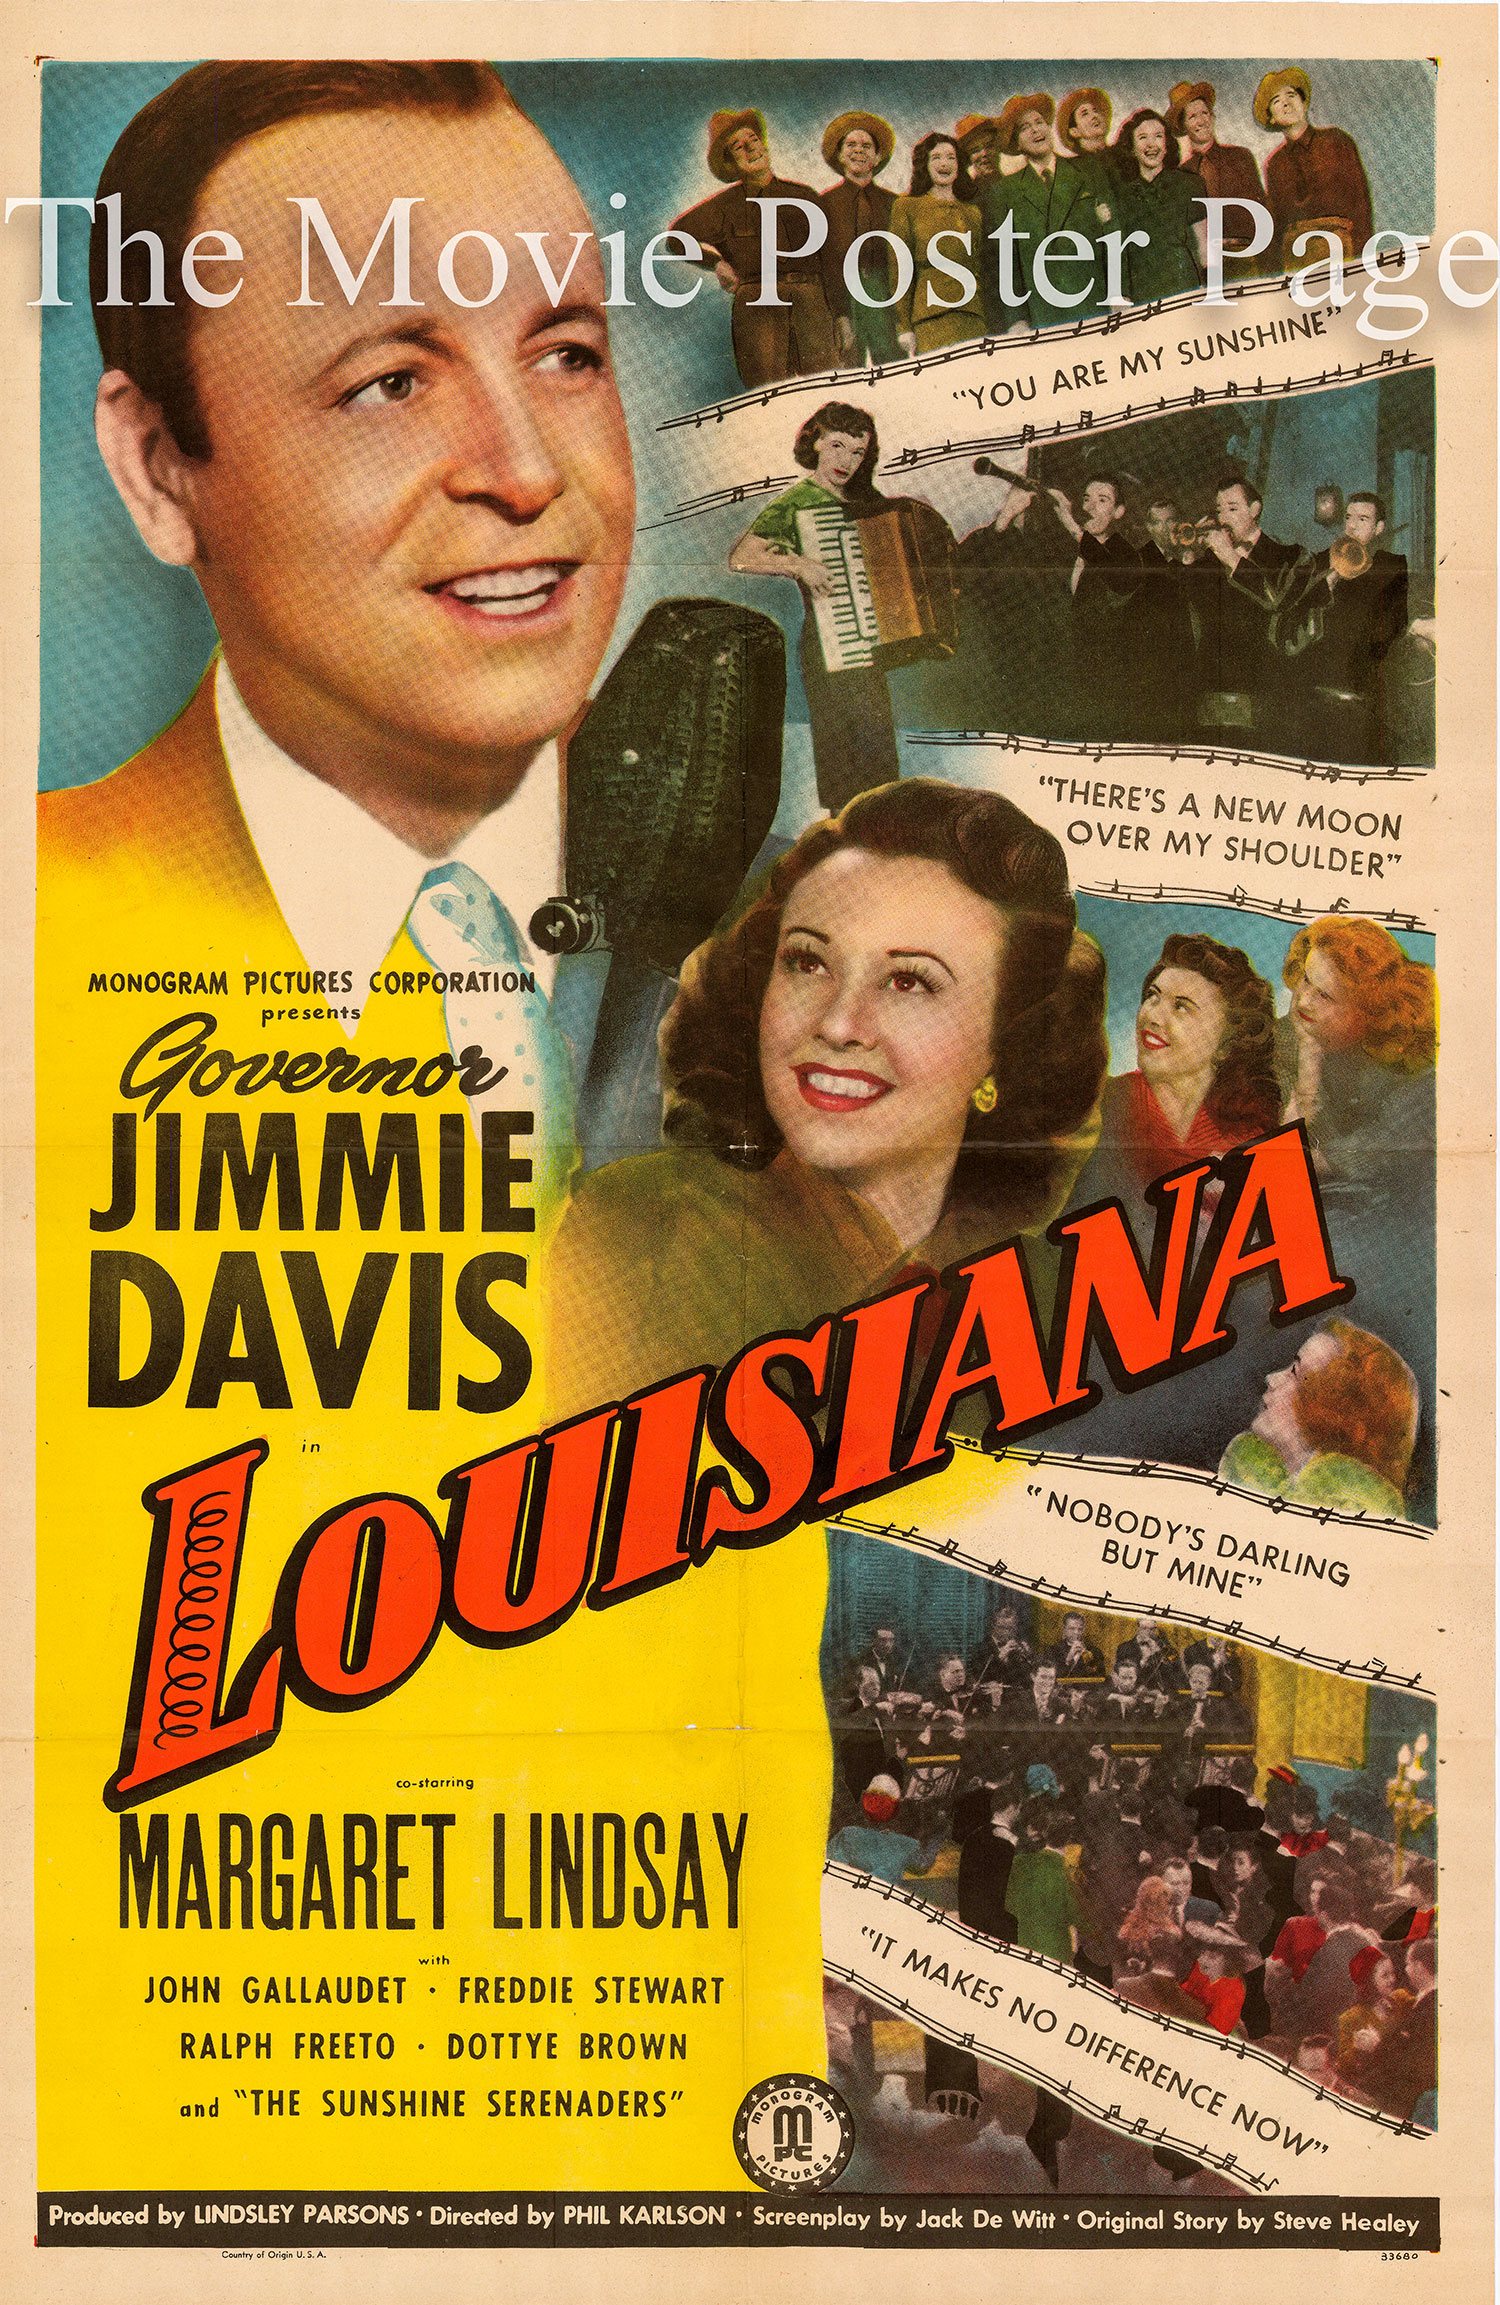 Pictured is a US one-sheet promotional poster for the 1947 Phil Karlson film Louisiana starring Jimmie Davis.